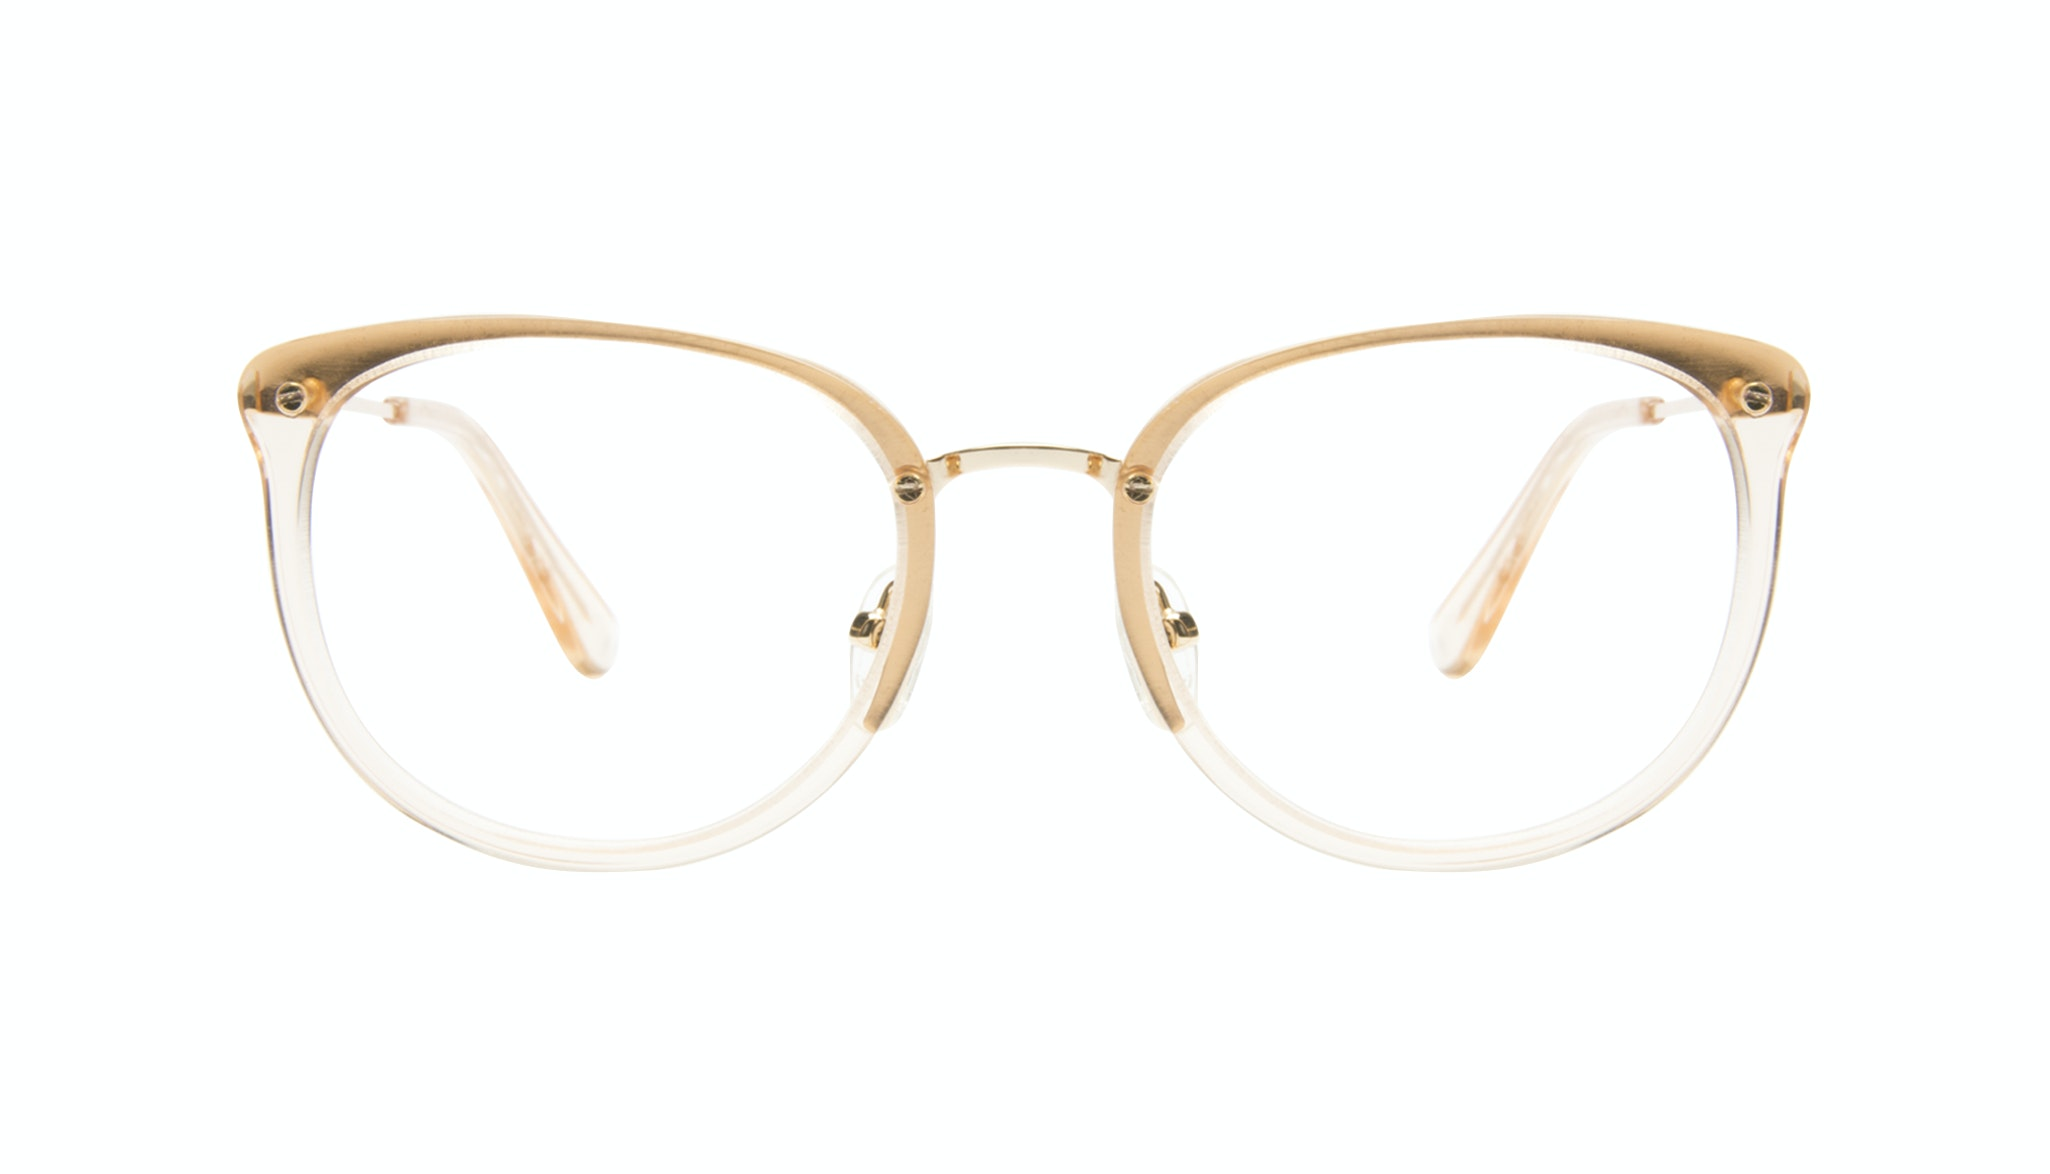 Affordable Fashion Glasses Round Eyeglasses Women Amaze Blond Metal